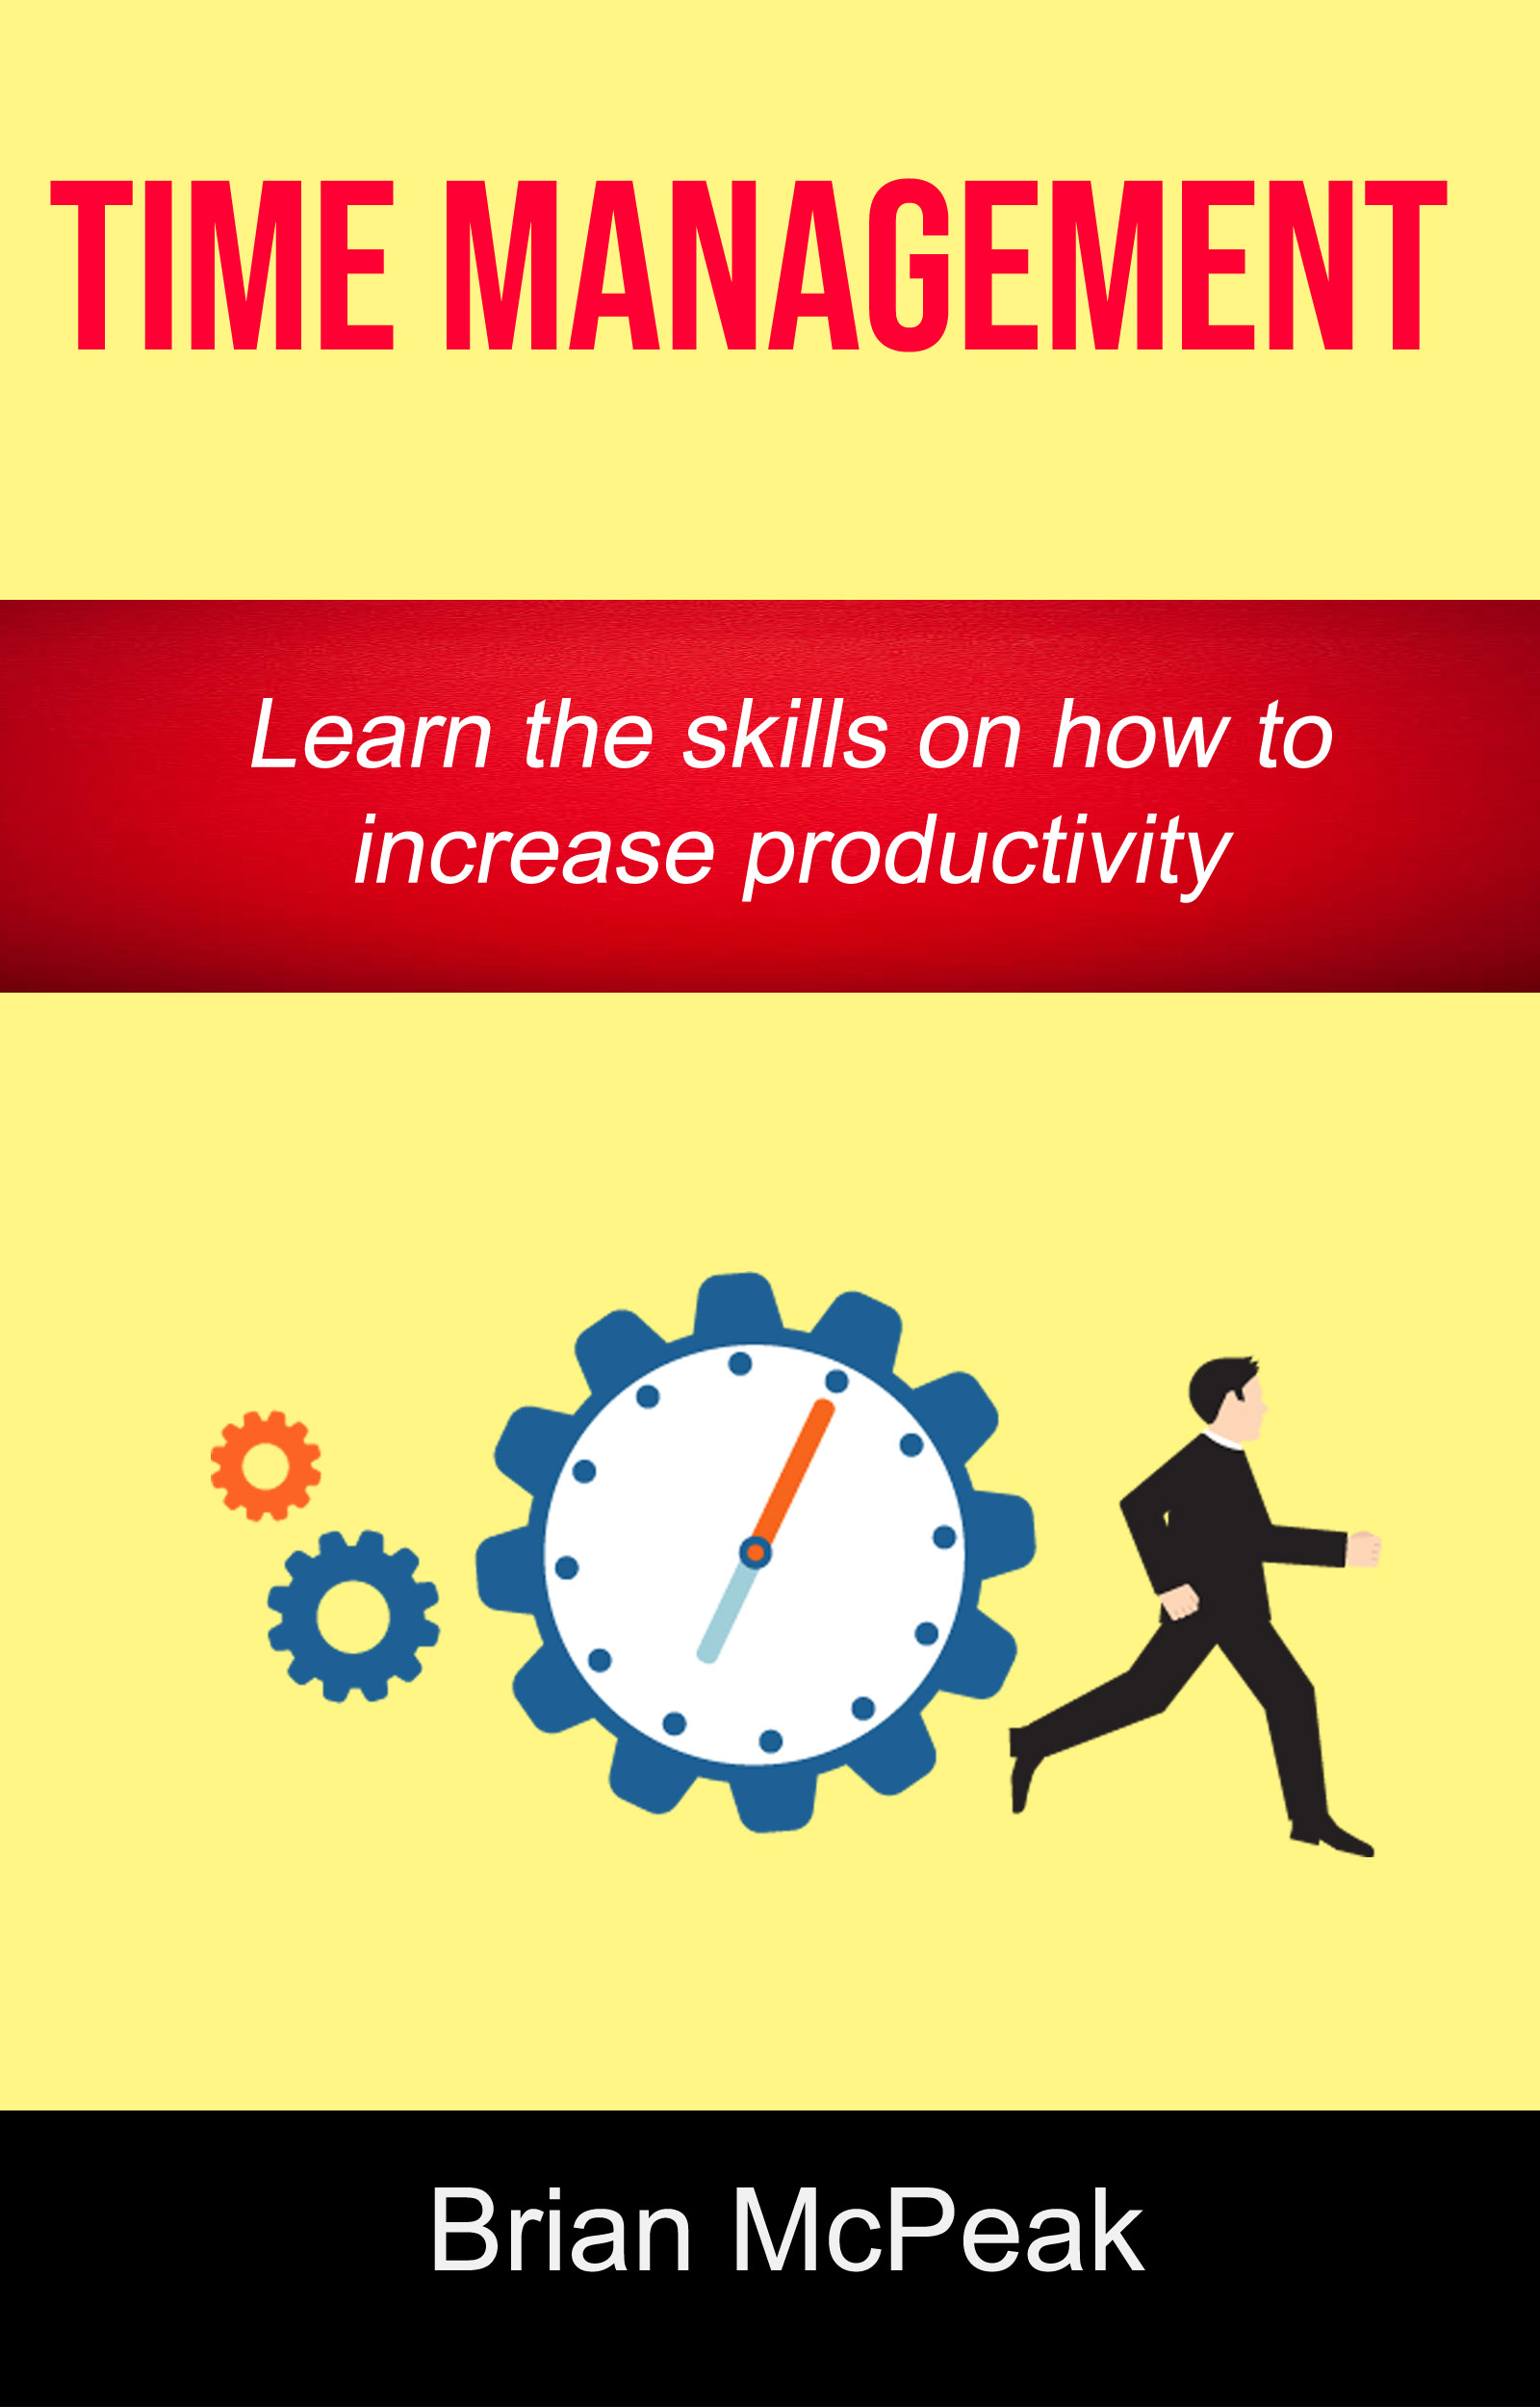 Time management: learn the skills on how to increase productivity